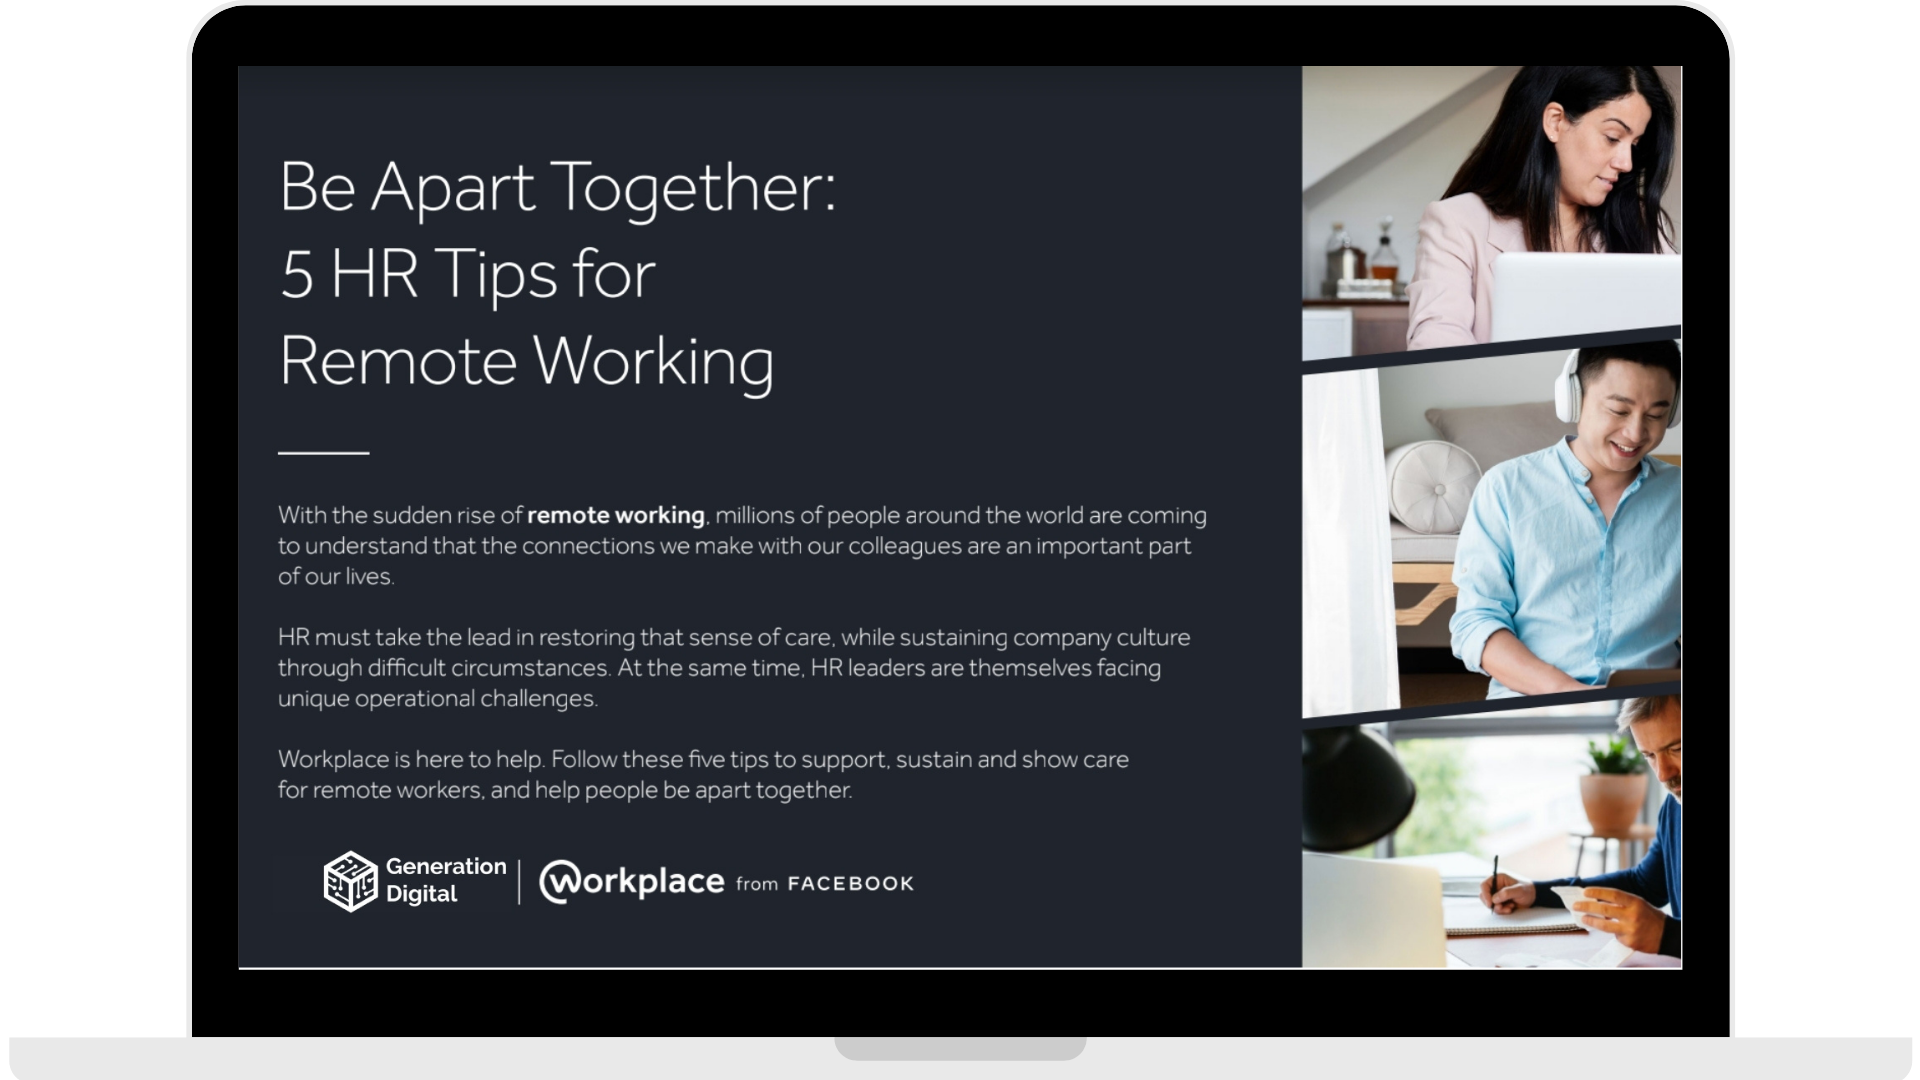 WPF - Be Apart Together_ 5 HR Tips for Remote Working - Laptop - Transparent